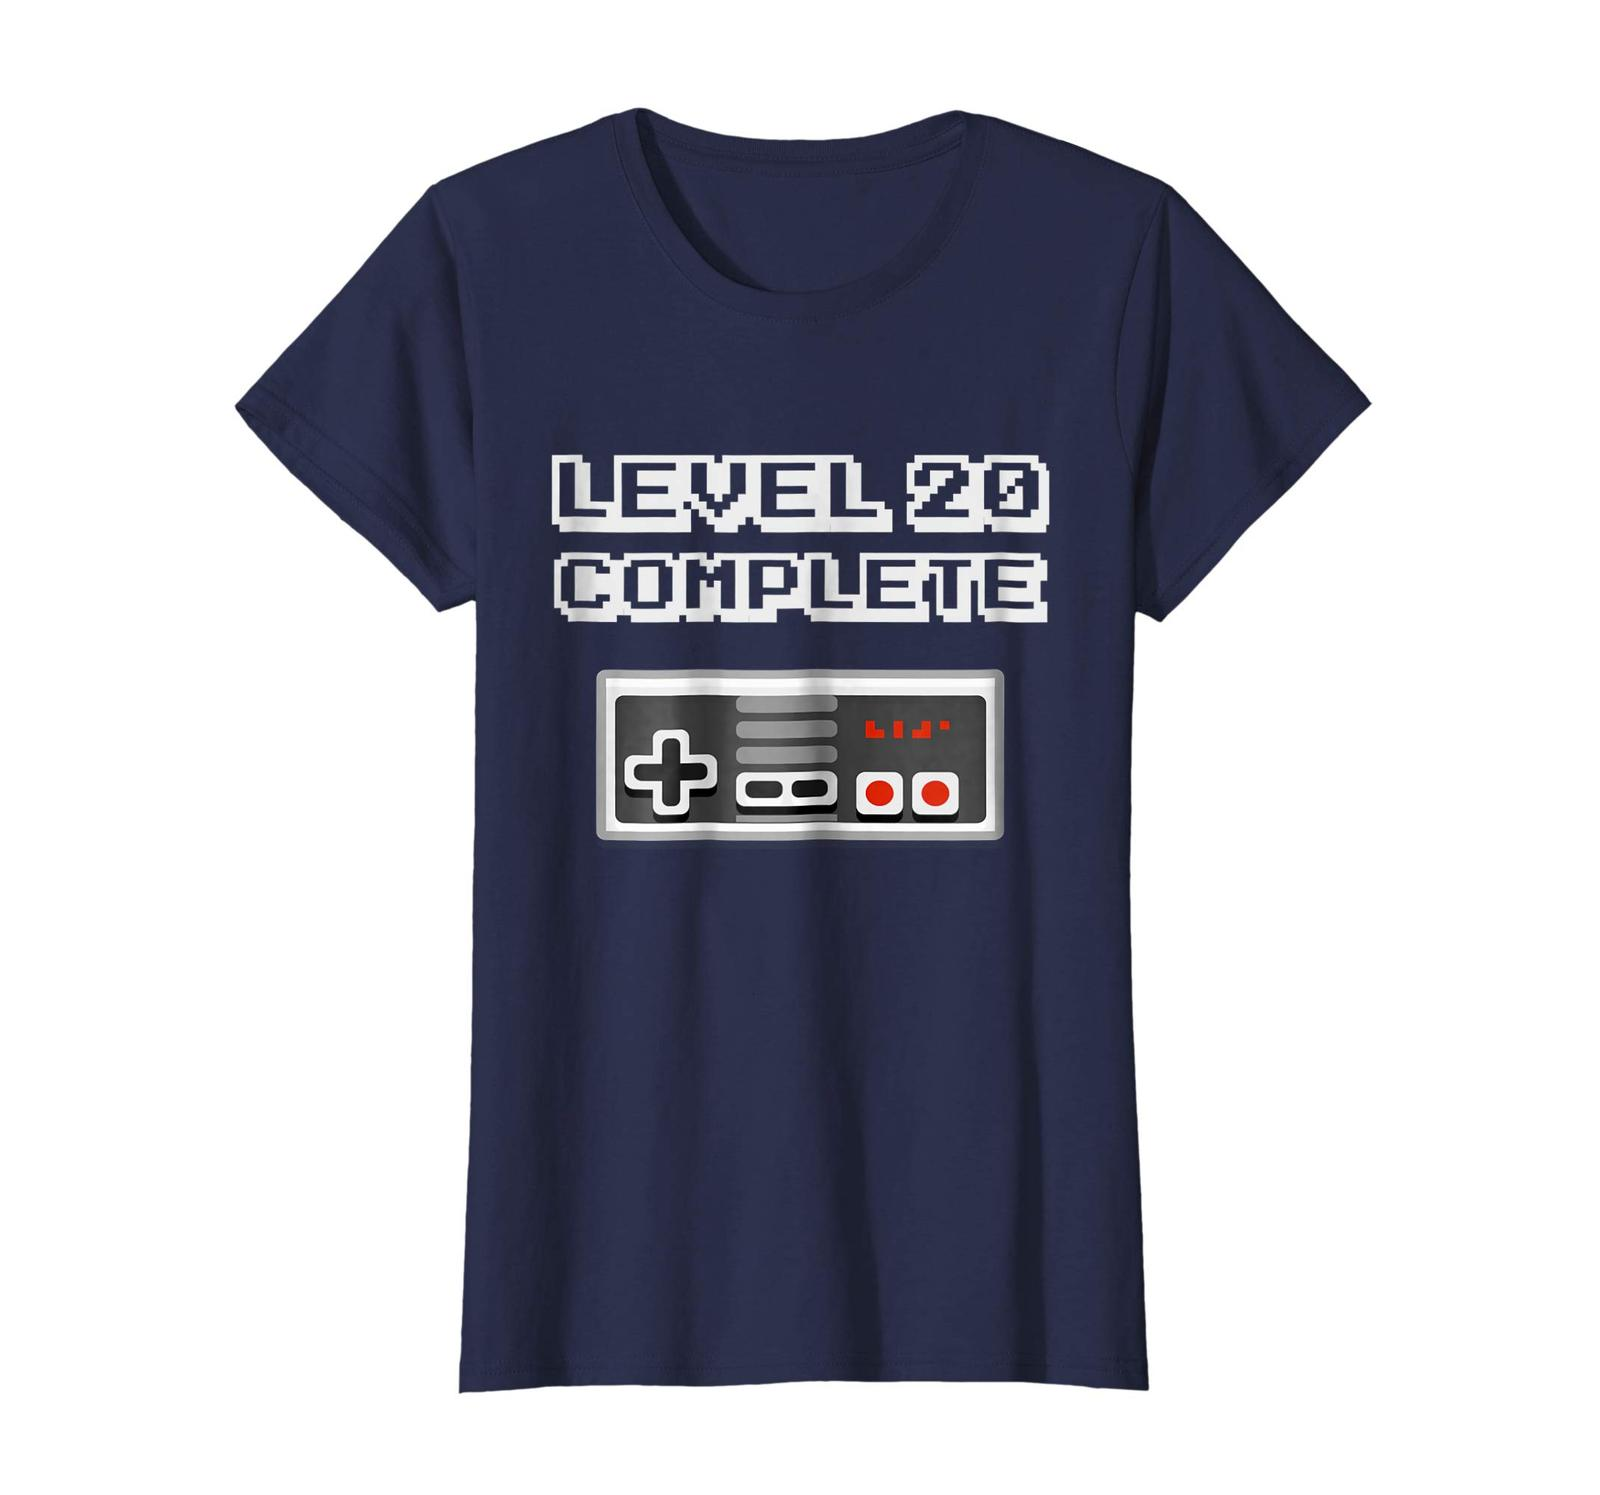 New Shirts - Level 20 Complete Retro Video Gamer 20th Birthday Gift Shirt Wowen image 4